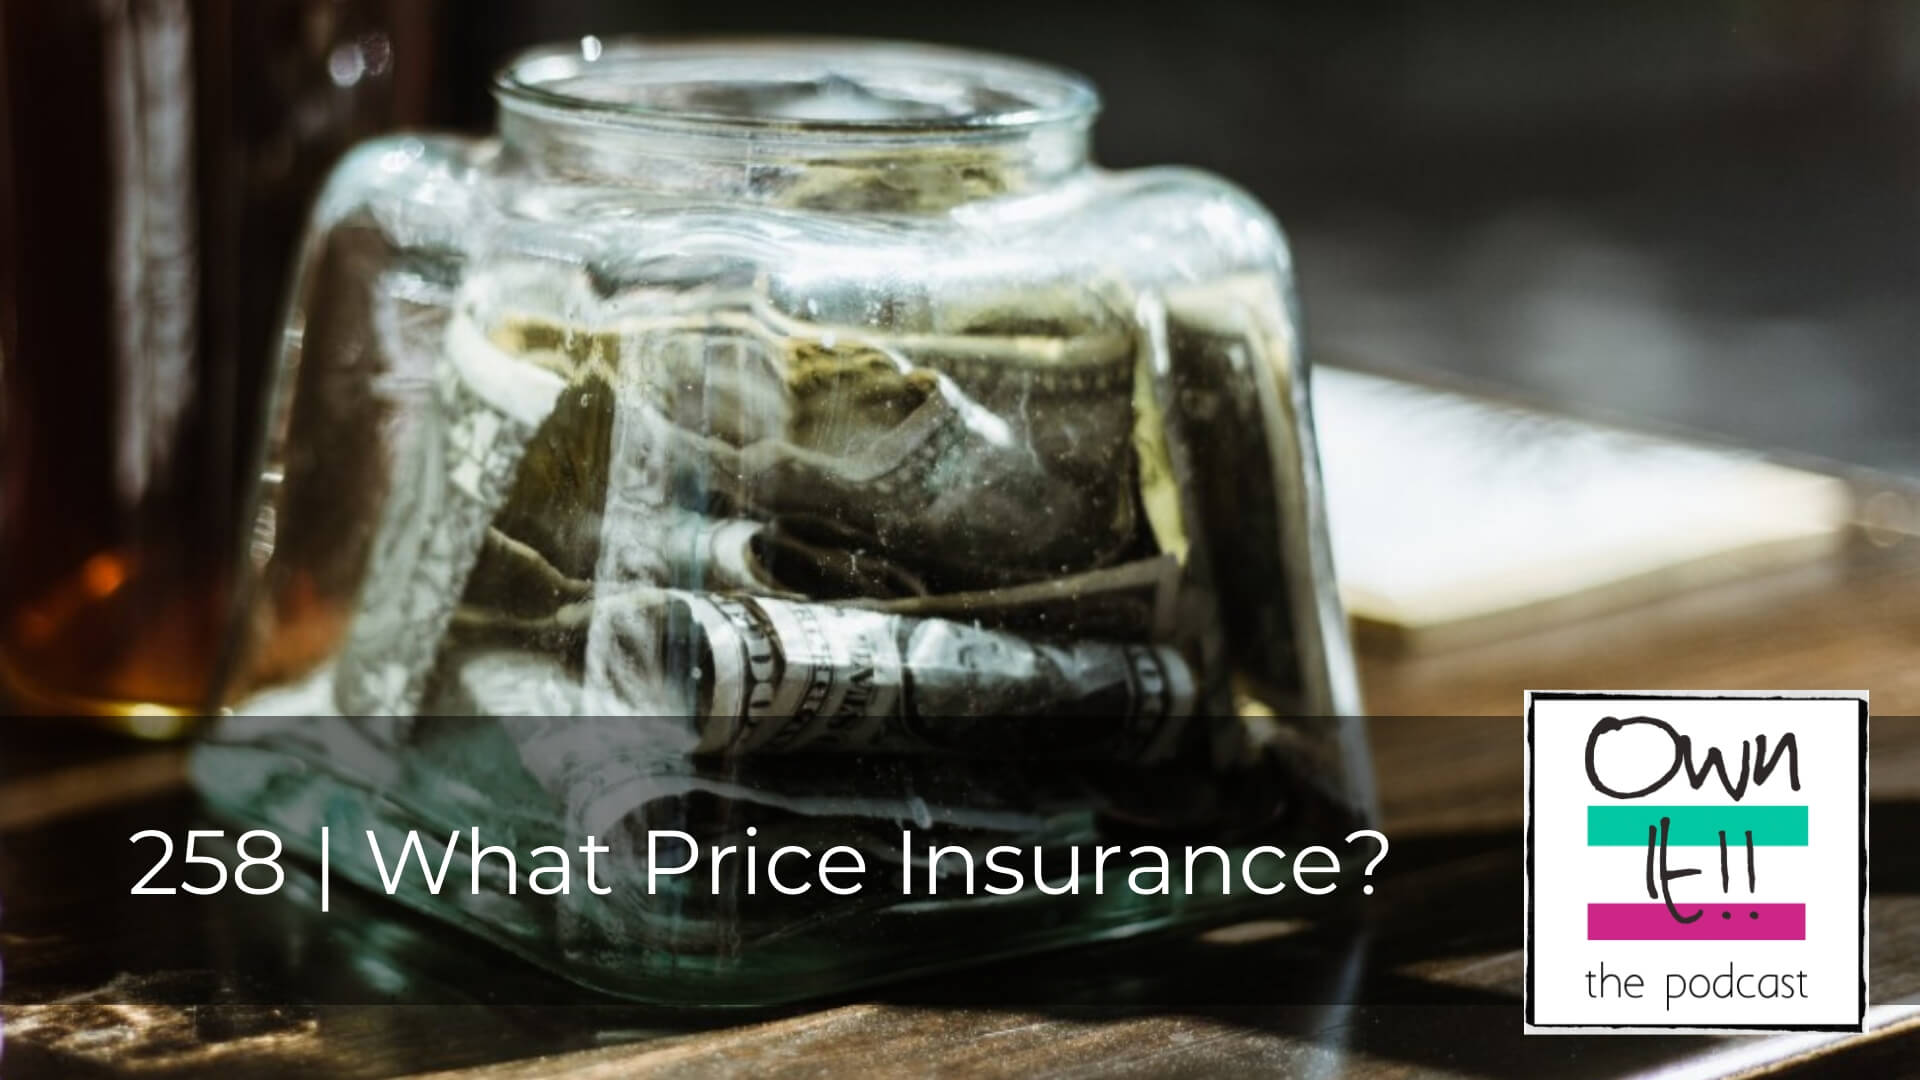 Own It! 258 | What Price Insurance?